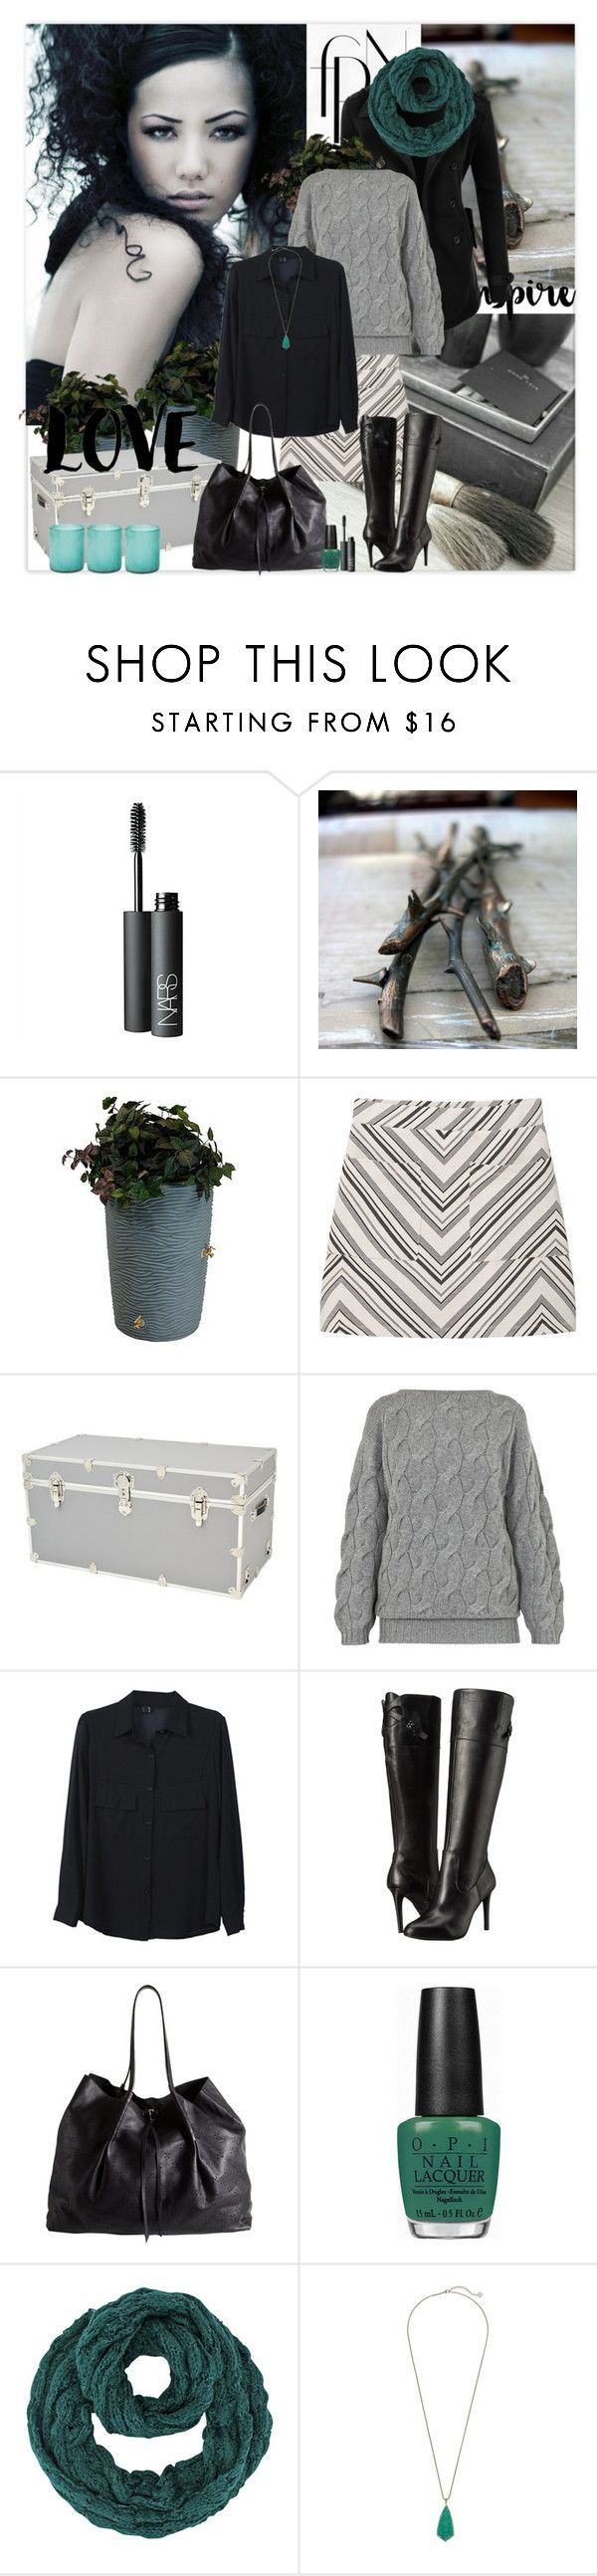 """M comme Mode de vie !!! 12"" by vicky-soleil ❤ liked on Polyvore featuring NARS Cosmetics, LE3NO, Good Ideas, MANGO, Lauren Ralph Lauren, Nina Ricci, Kendra Scott and Jamie Young"